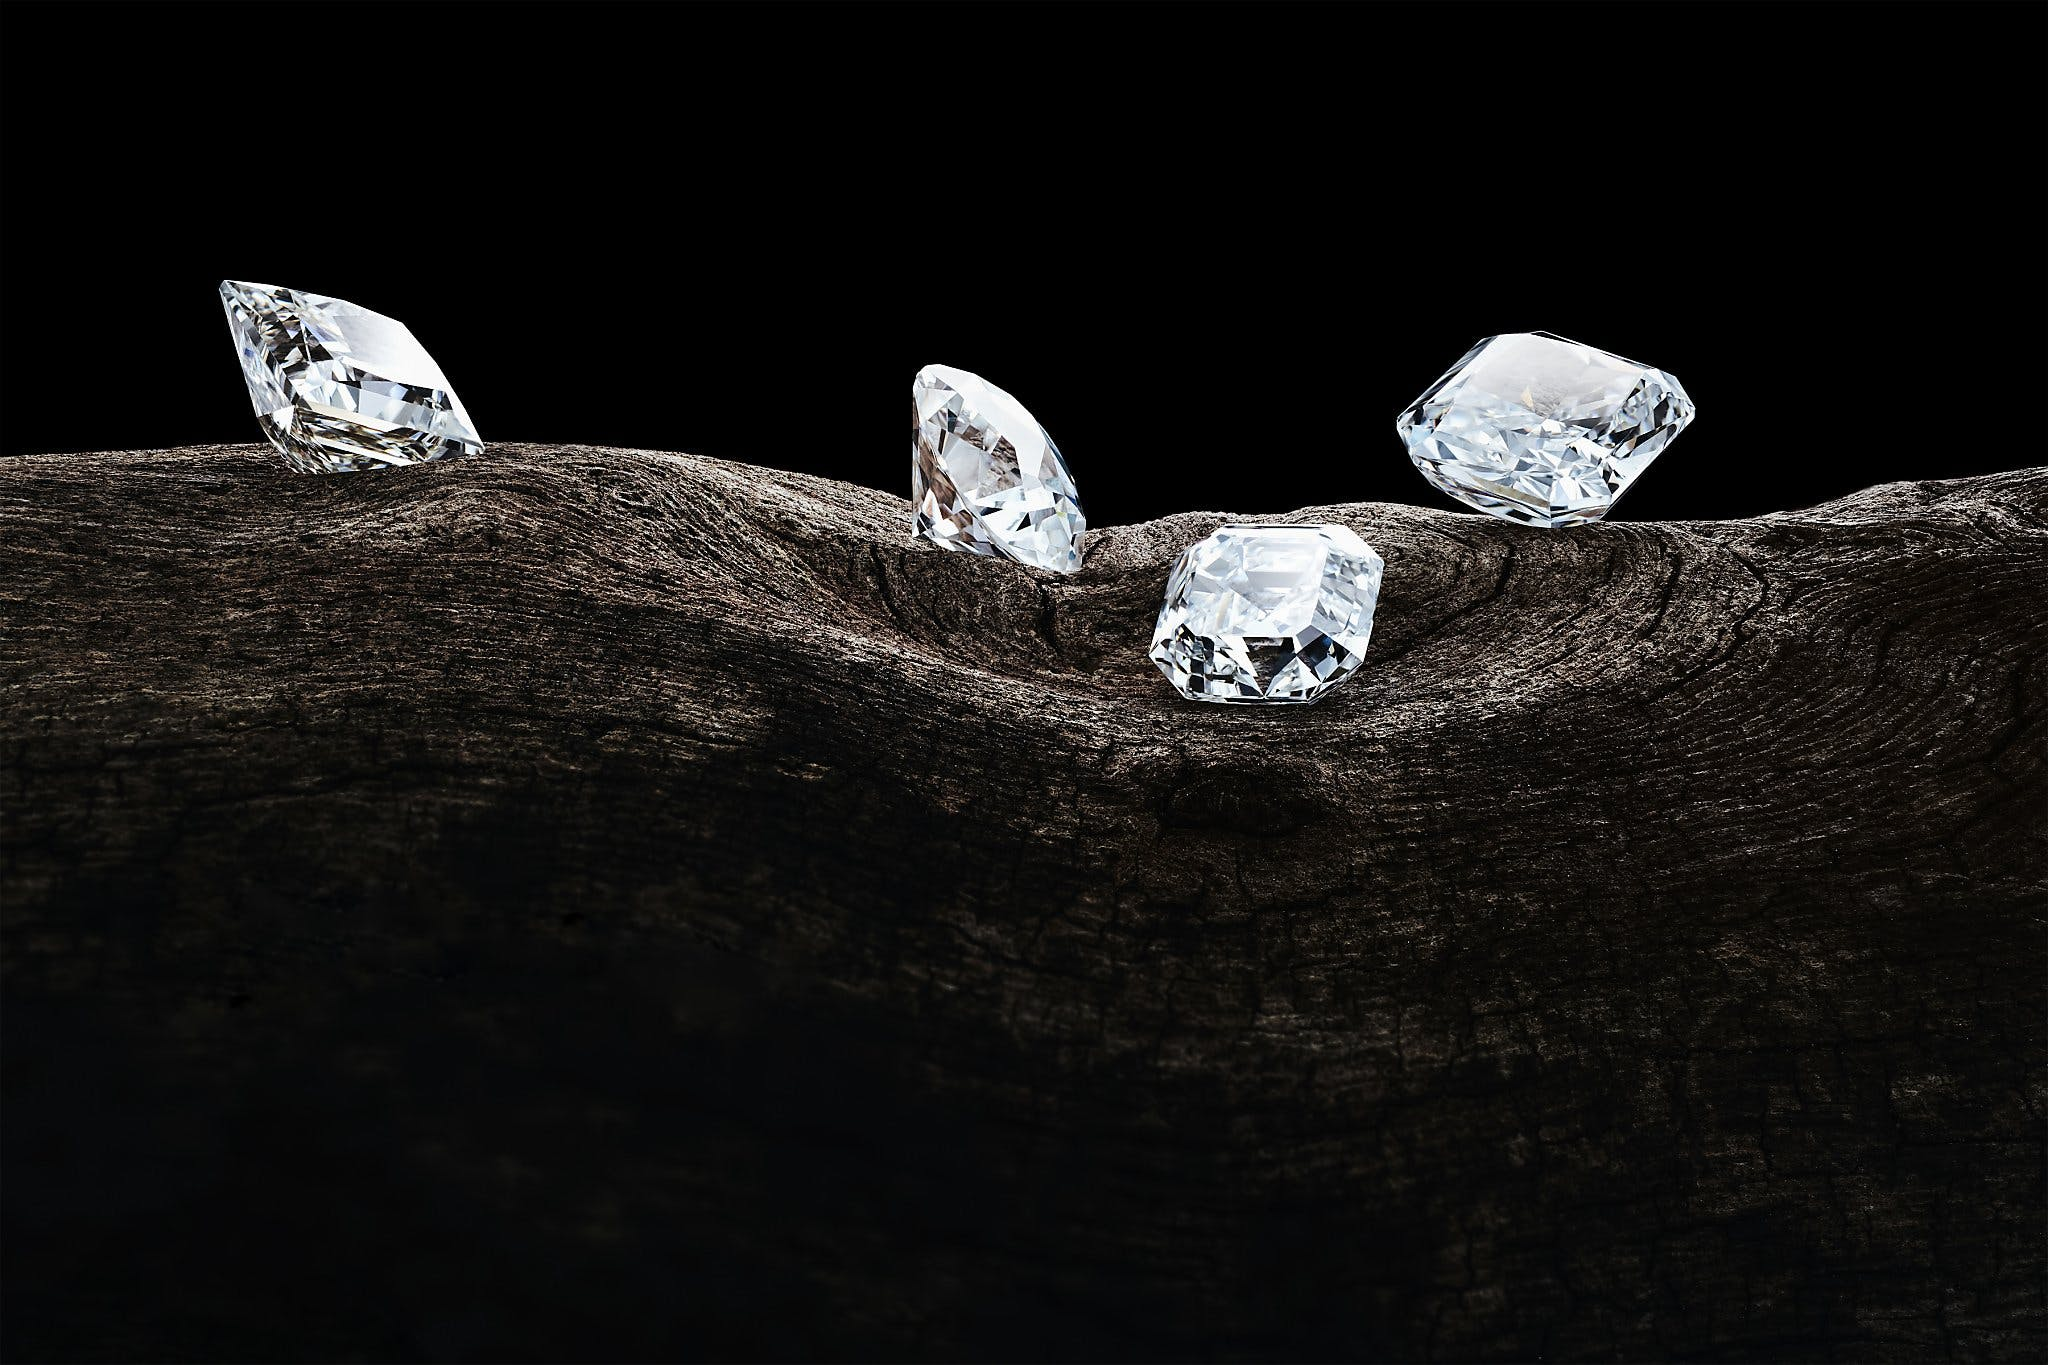 CORONAVIRUS CAUSES DIAMOND OVERSUPPLY